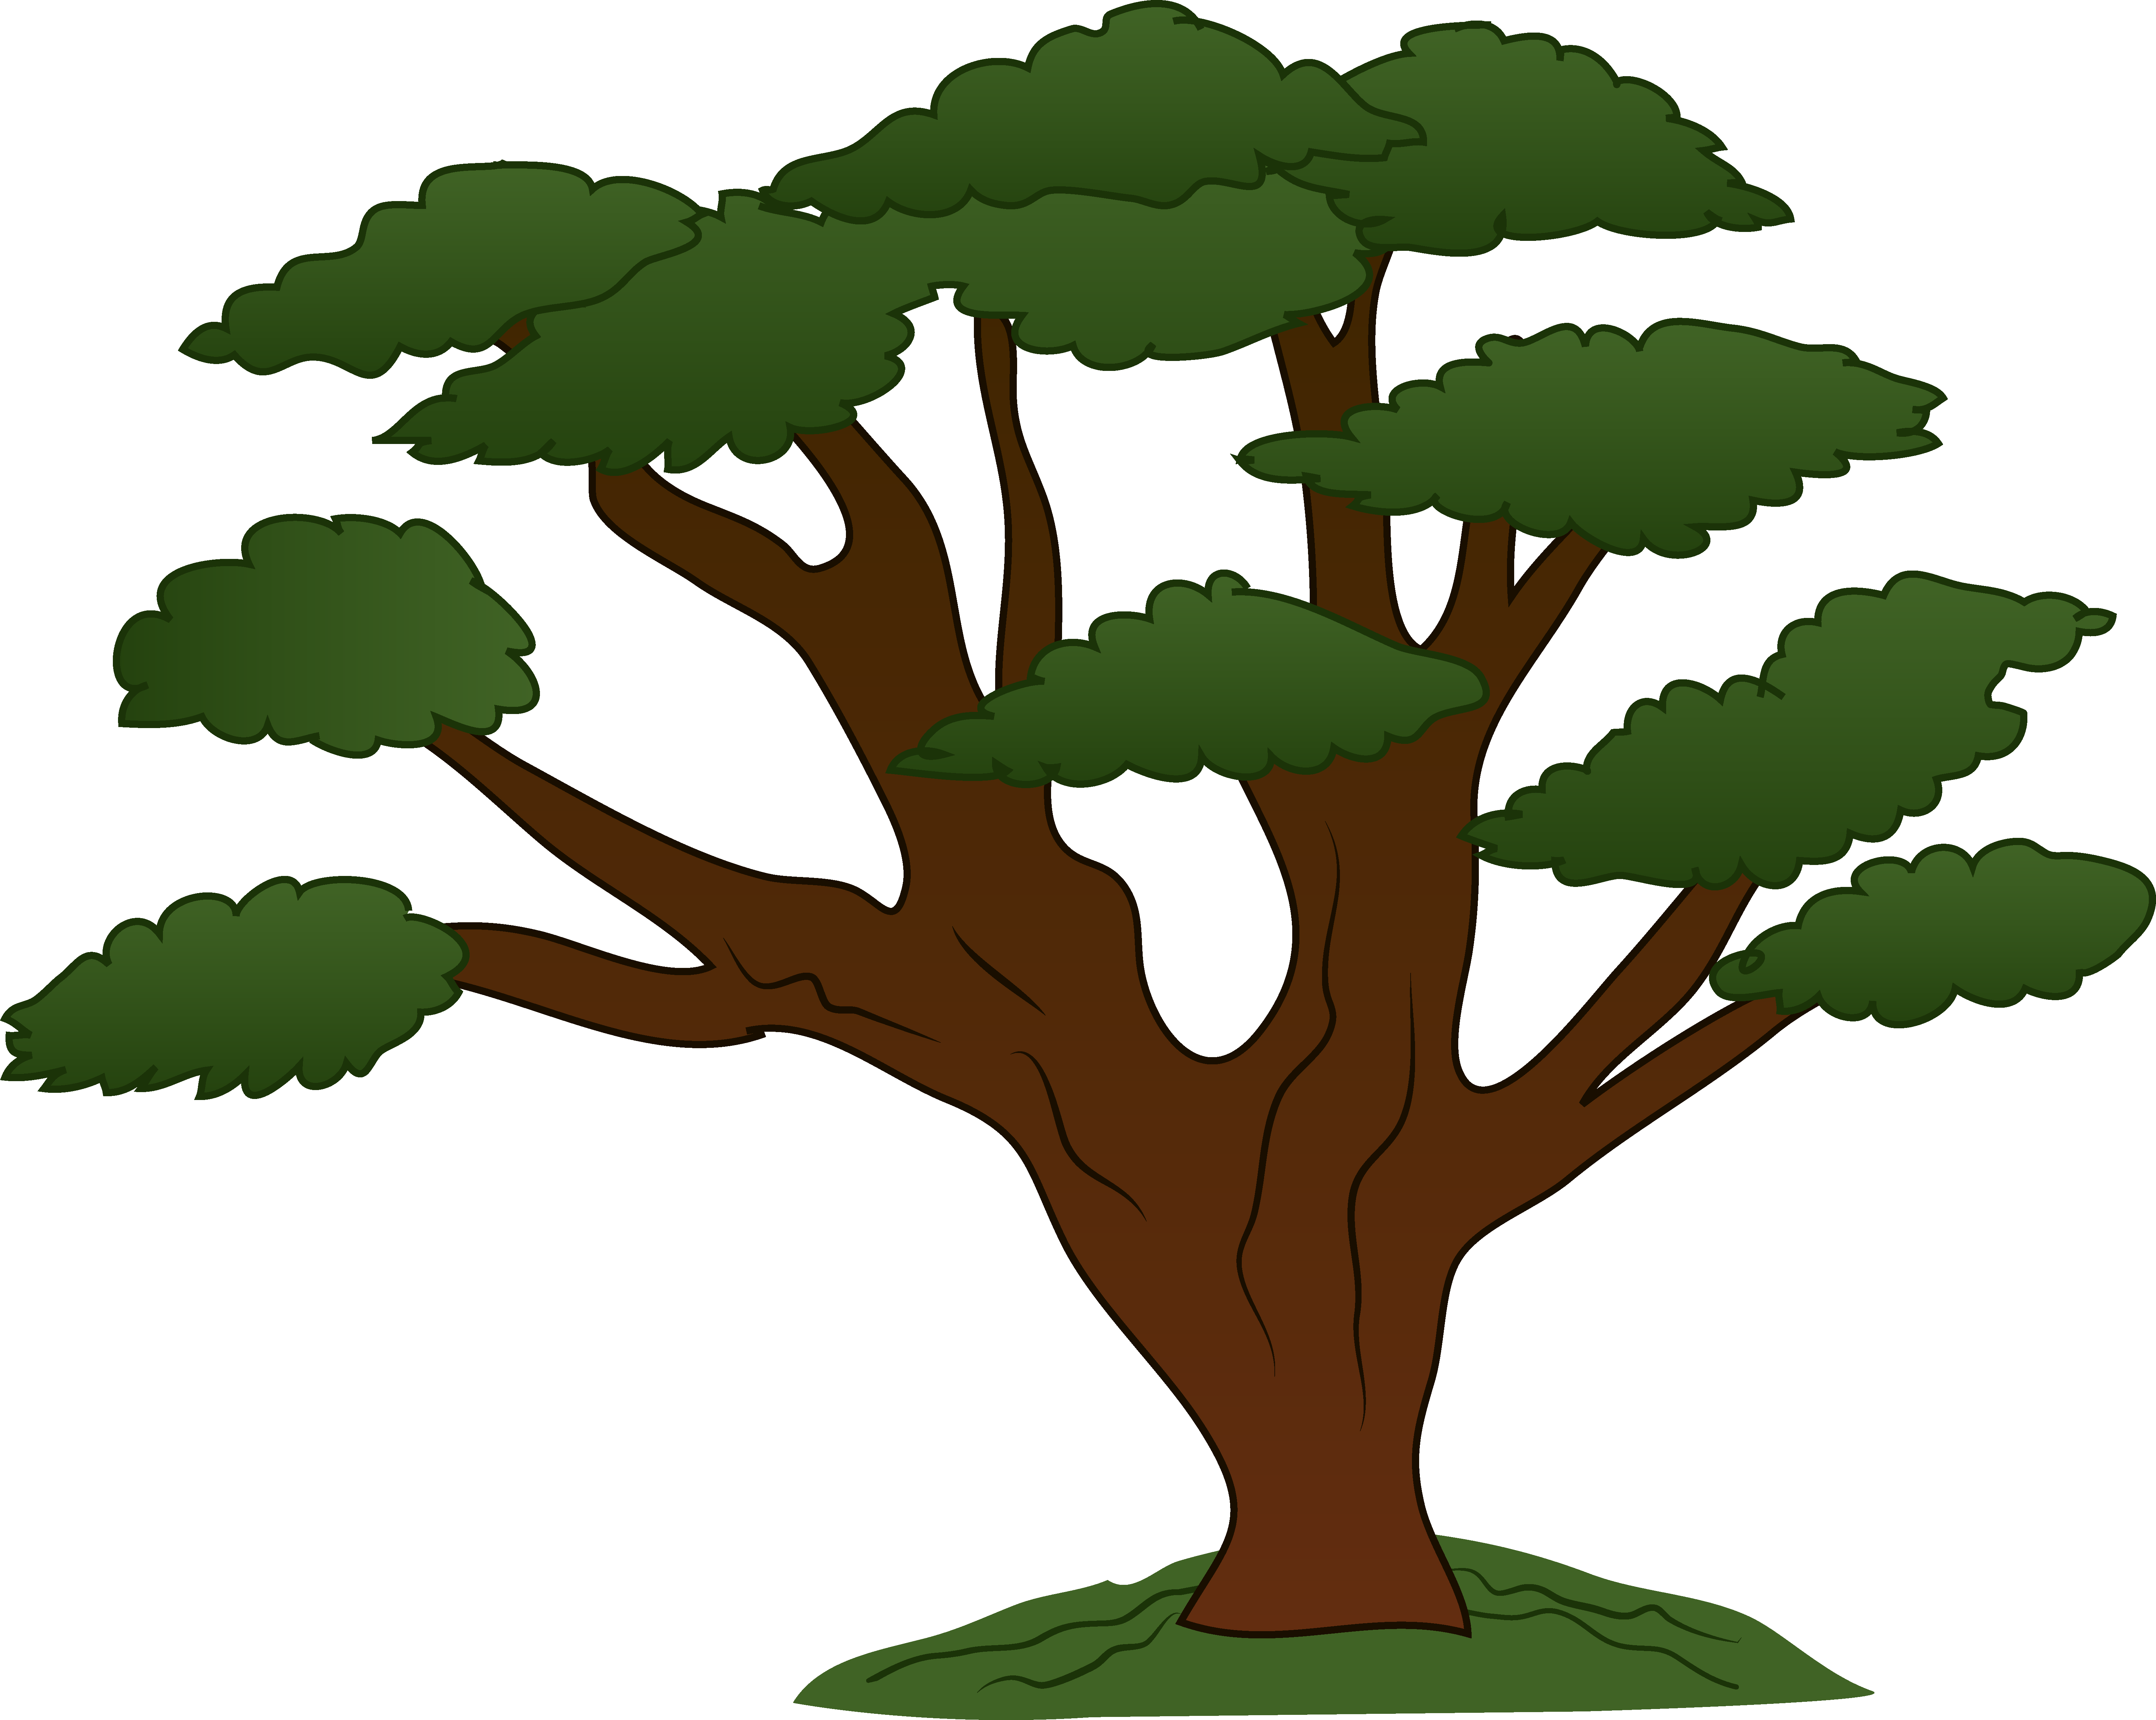 Family tree clipart images png freeuse download Big Tree Clipart png freeuse download